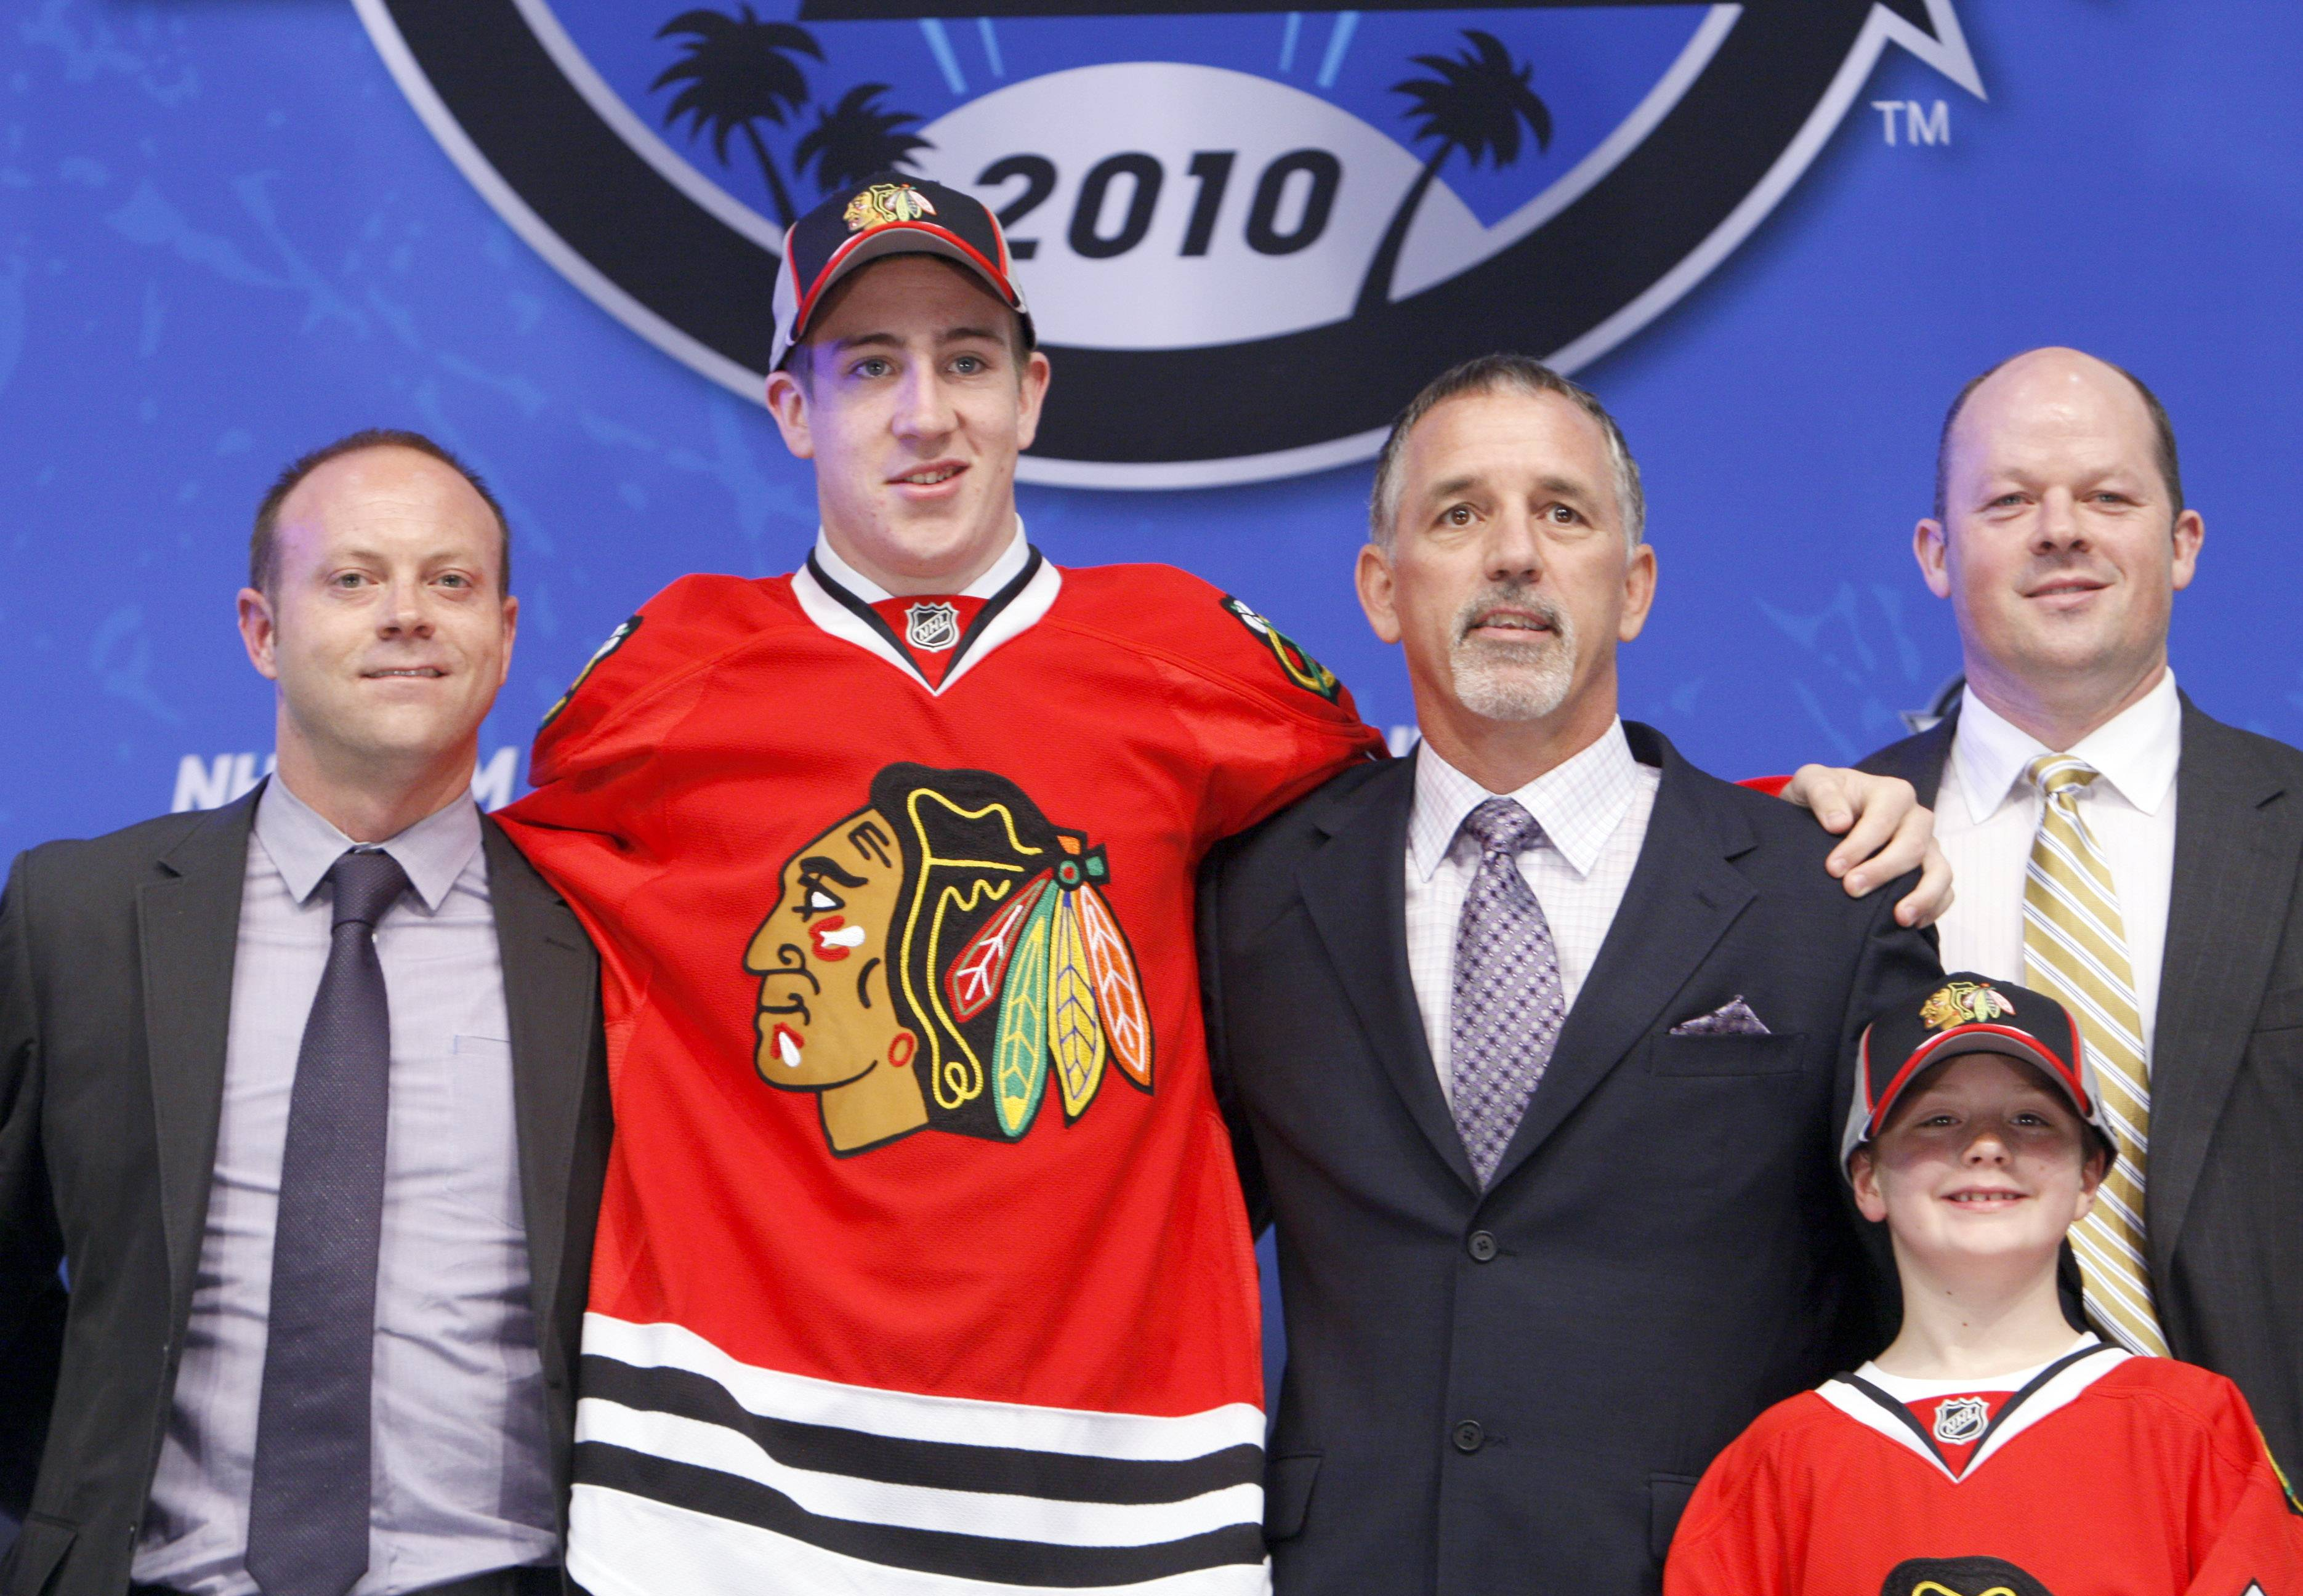 Kevin Hayes, second from left, was the Blackhawks' first round draft pick in 2010.